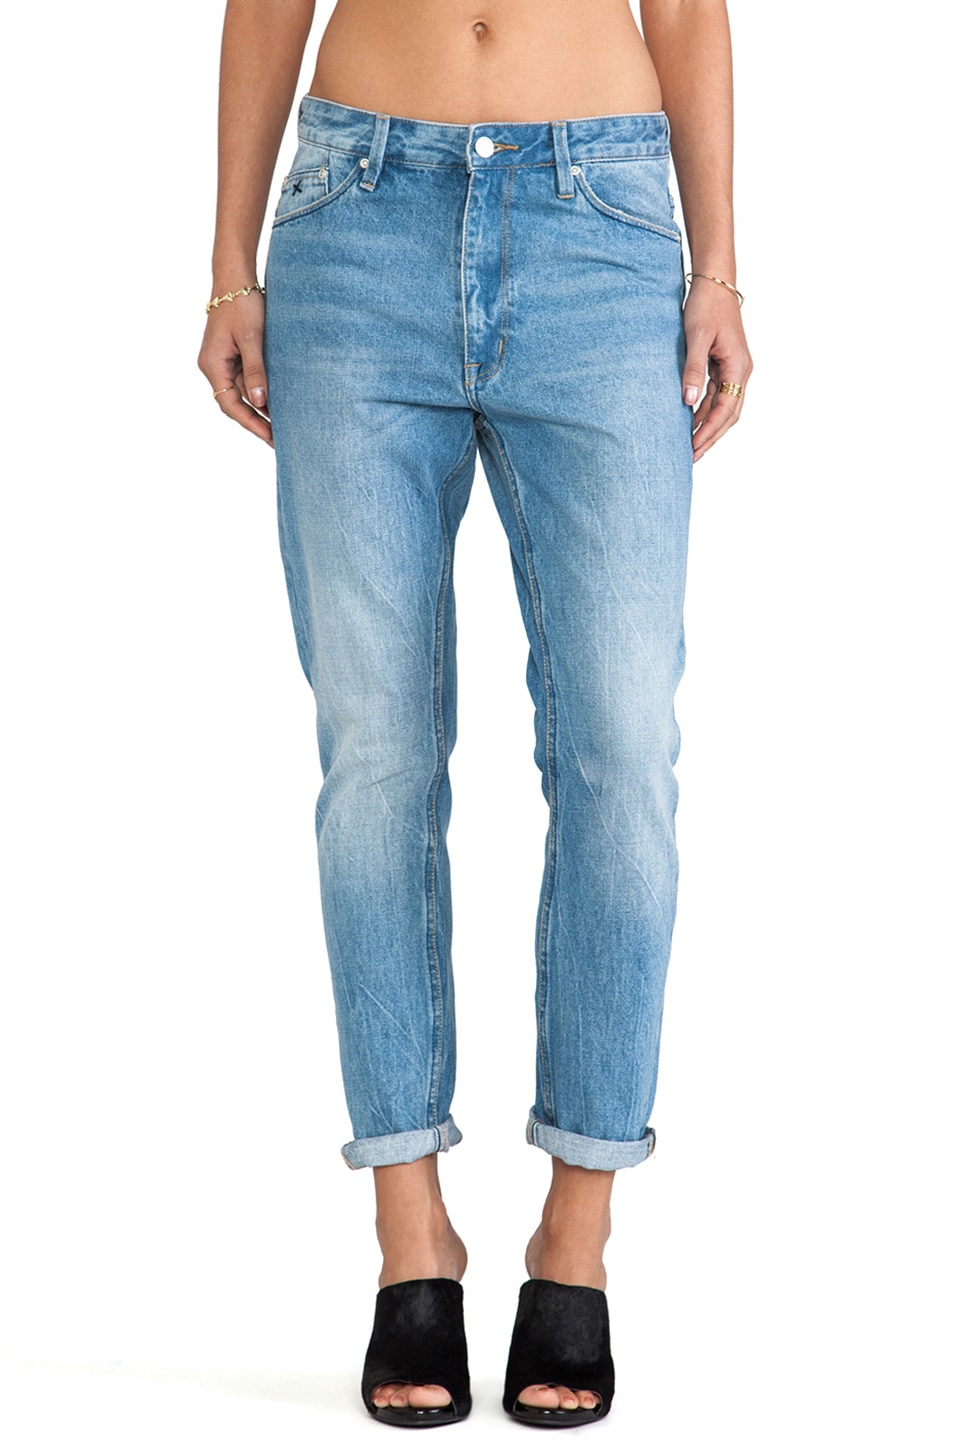 RES Denim Slacker Boyfriend in Rainsong Vintage